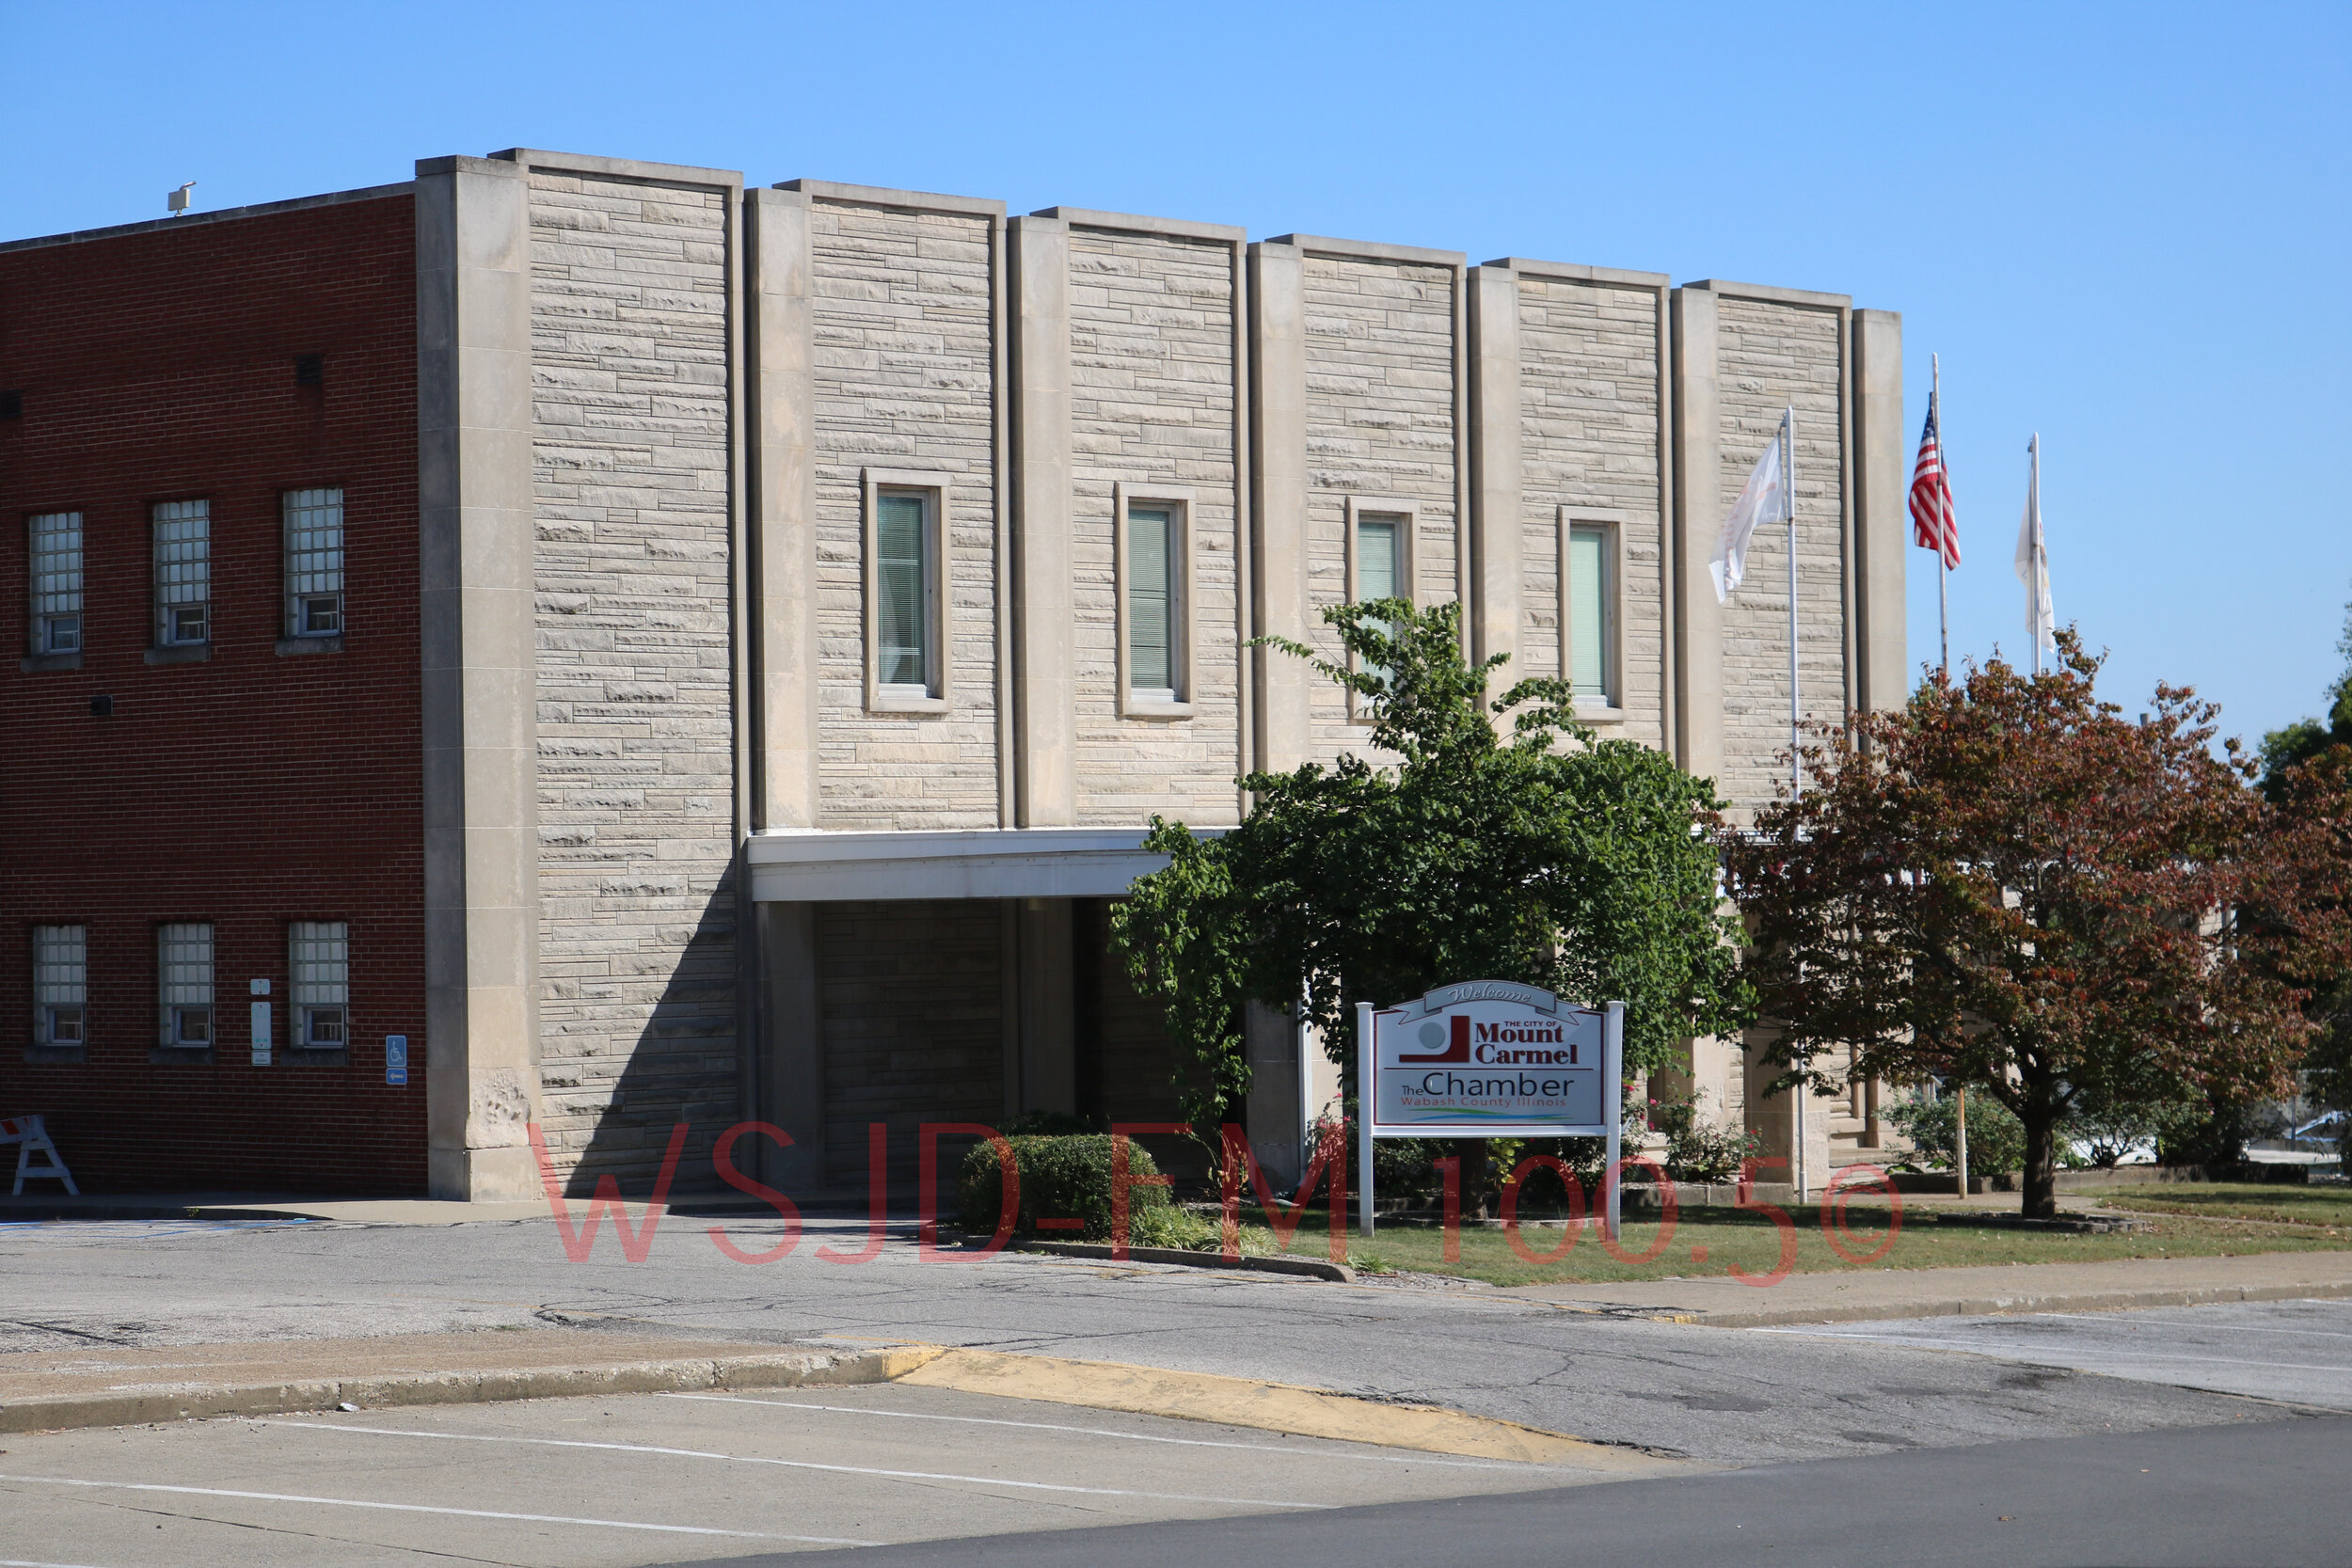 The former location of Mt. Carmel City Hall and Elks Club.